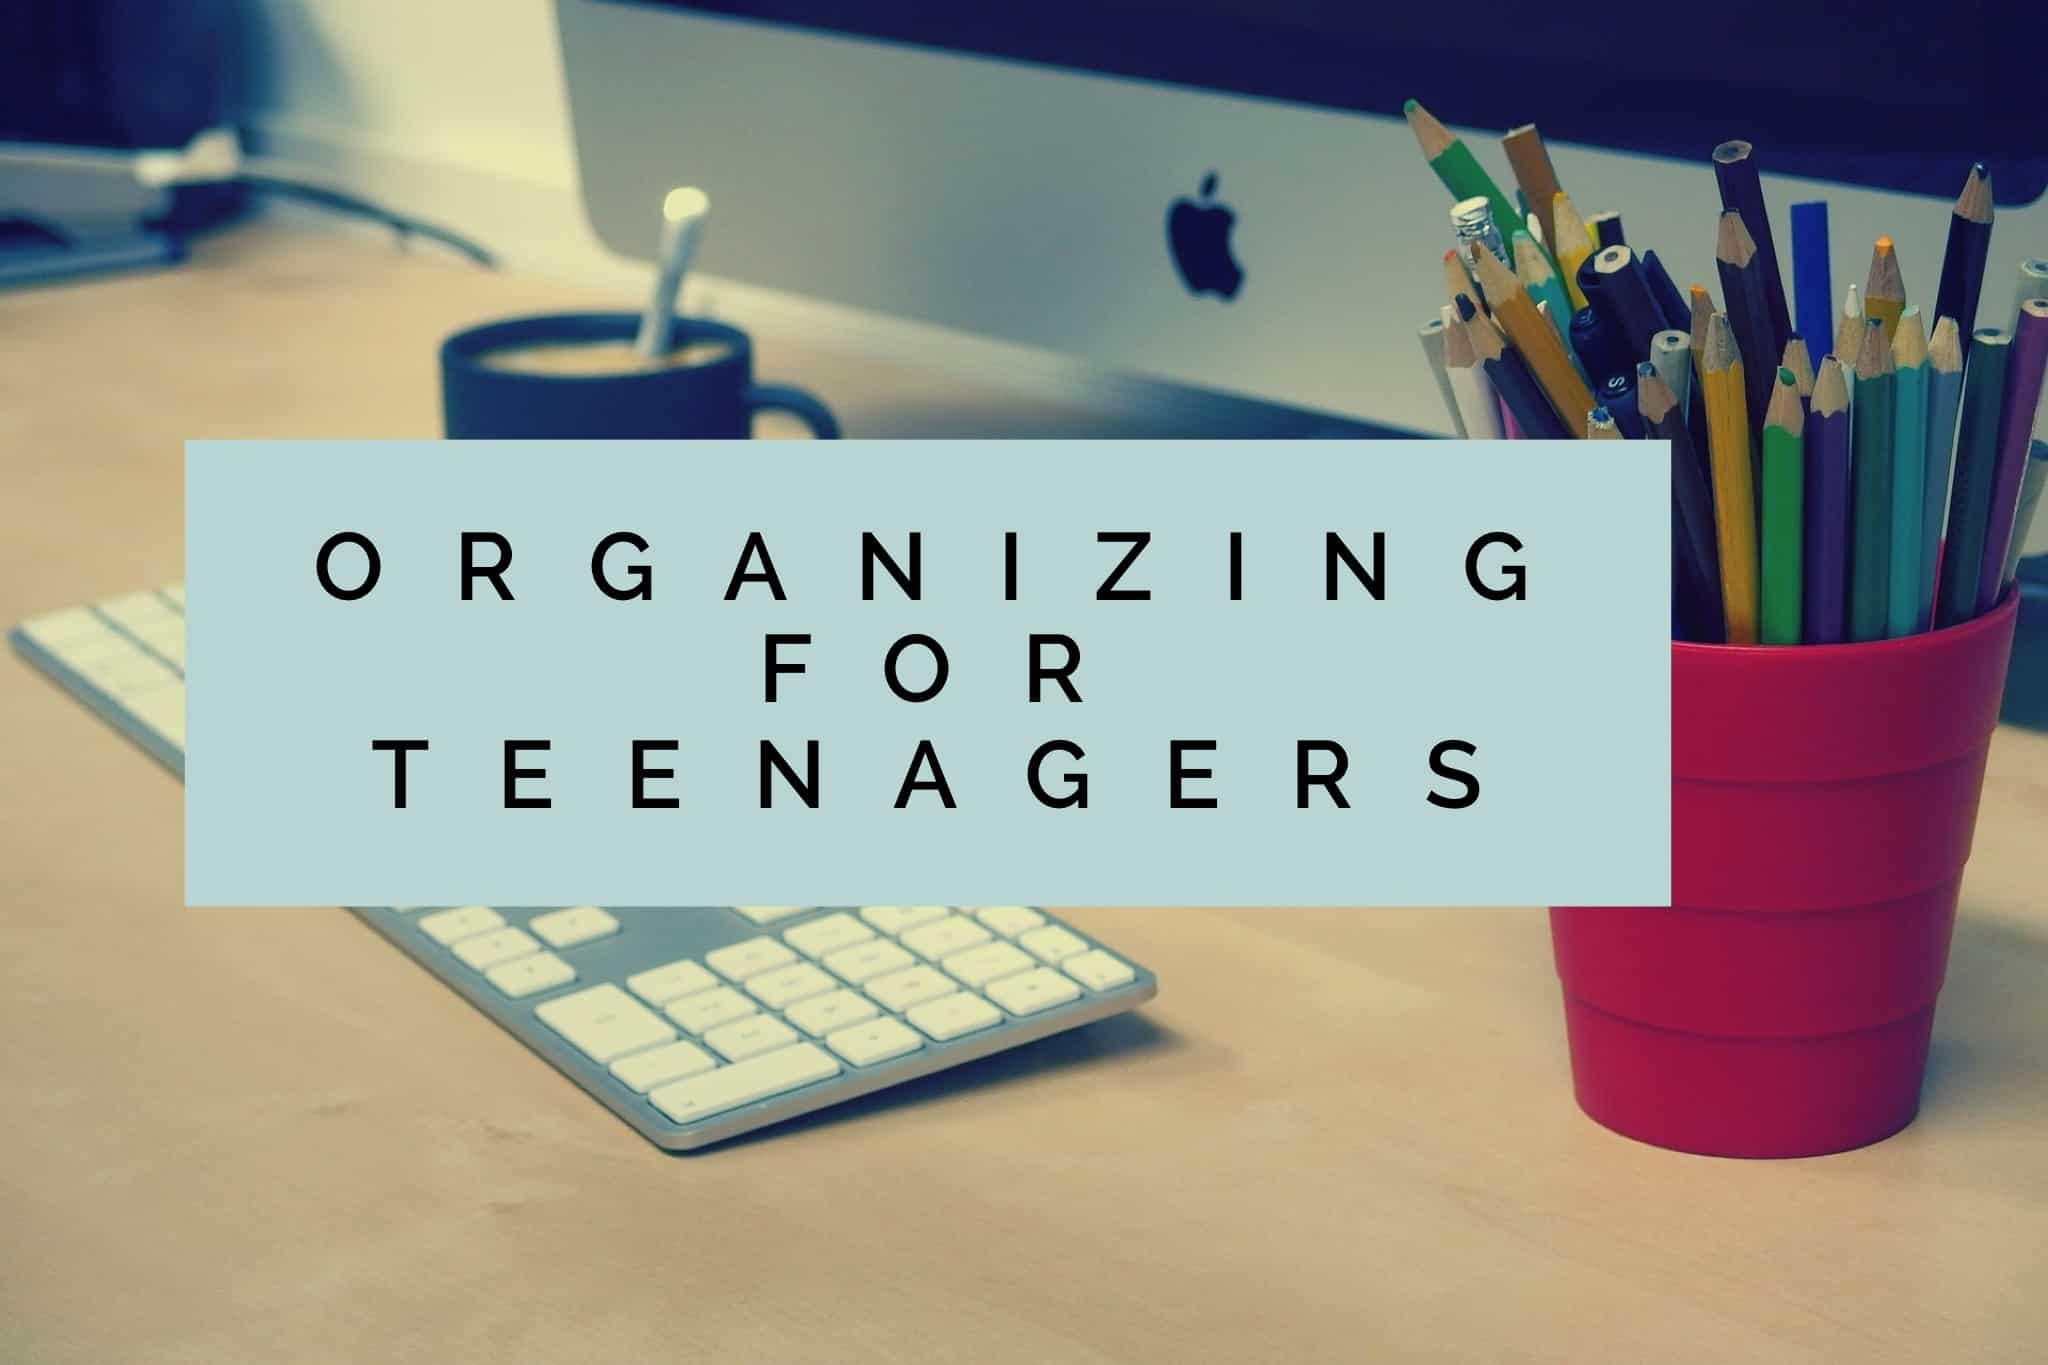 Organizing for Teenagers title